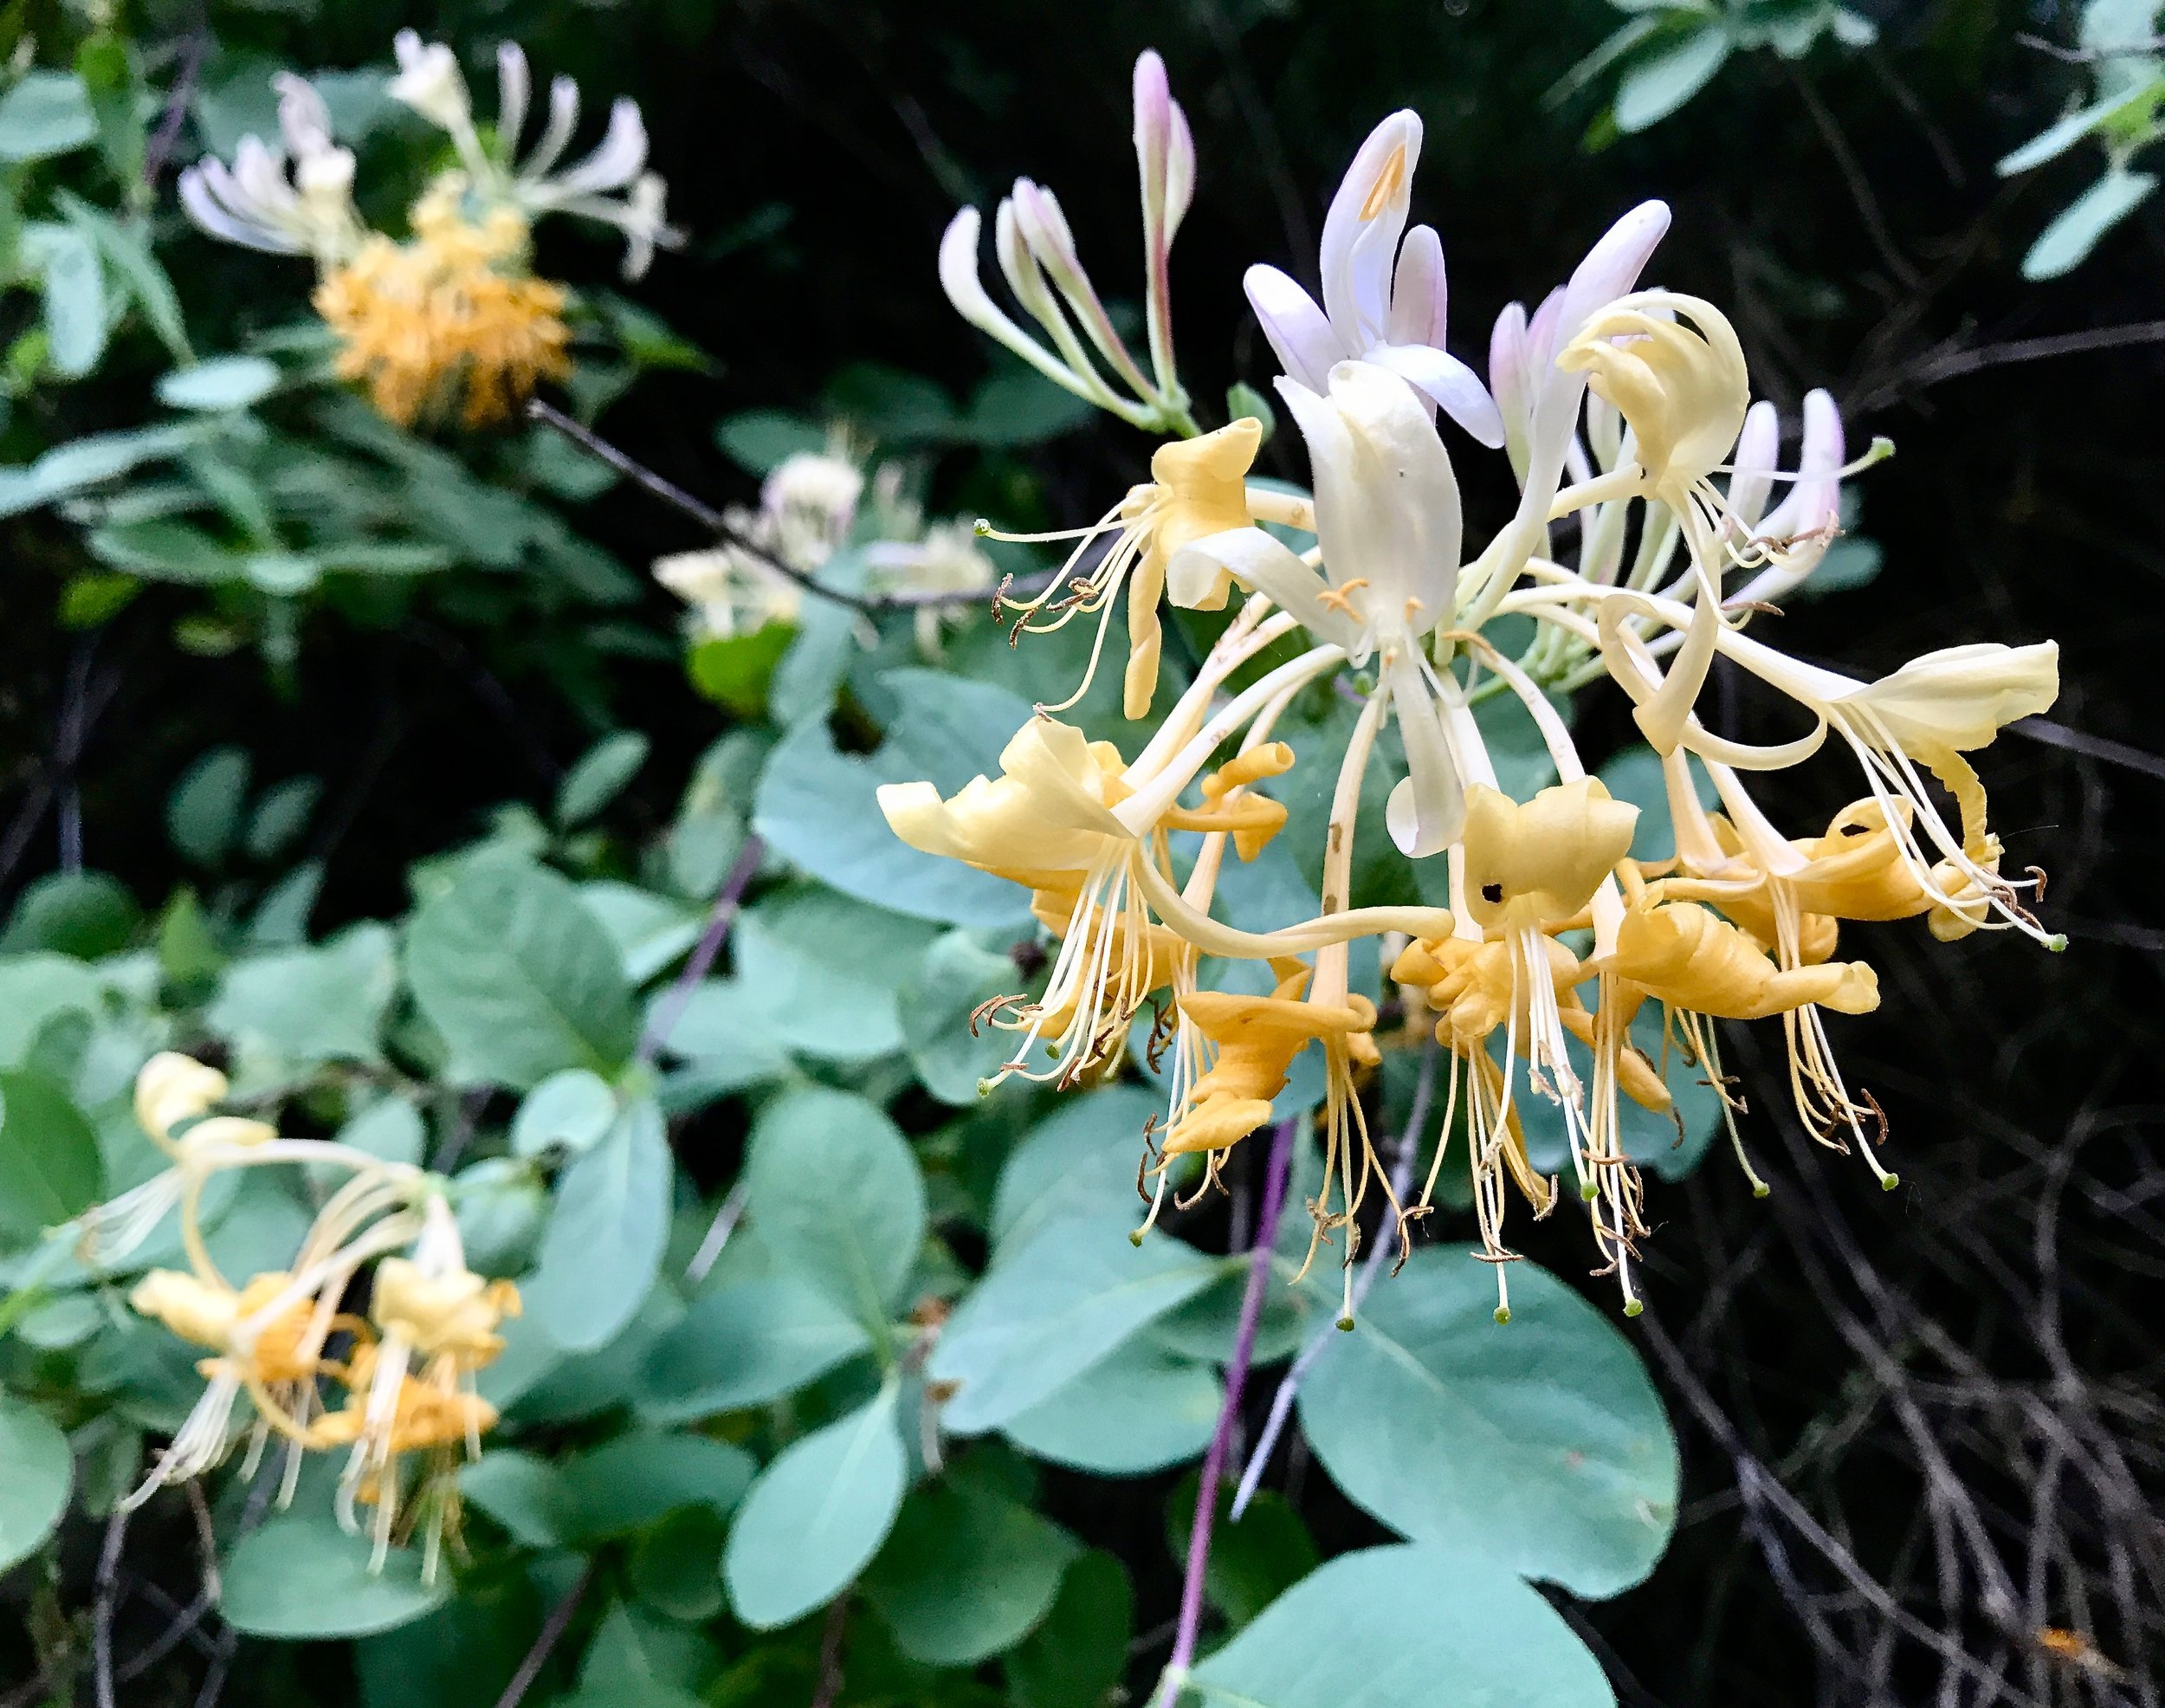 Honeysuckle ( Lonicera etrusca ) attracts many beneficial pollinators with its beautiful smell and appearance. The English used to plant it outside their houses to ward off evil spirits and bury it under their pillows to induce sweet dreams.